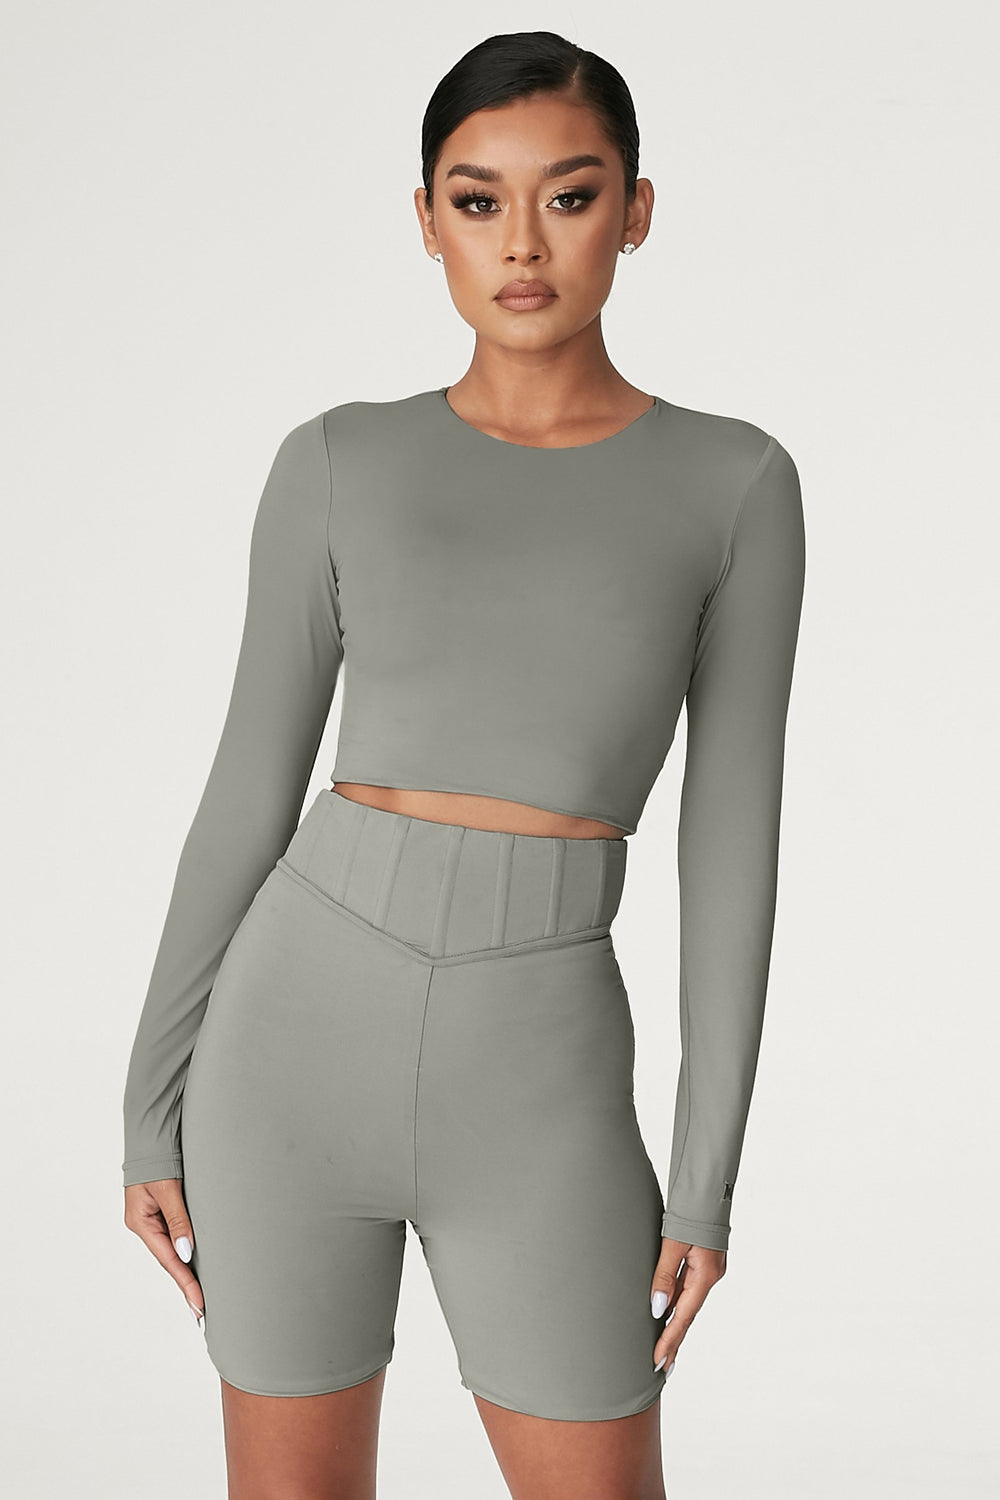 Emely Long Sleeve Crop Top  - Sage - MESHKI